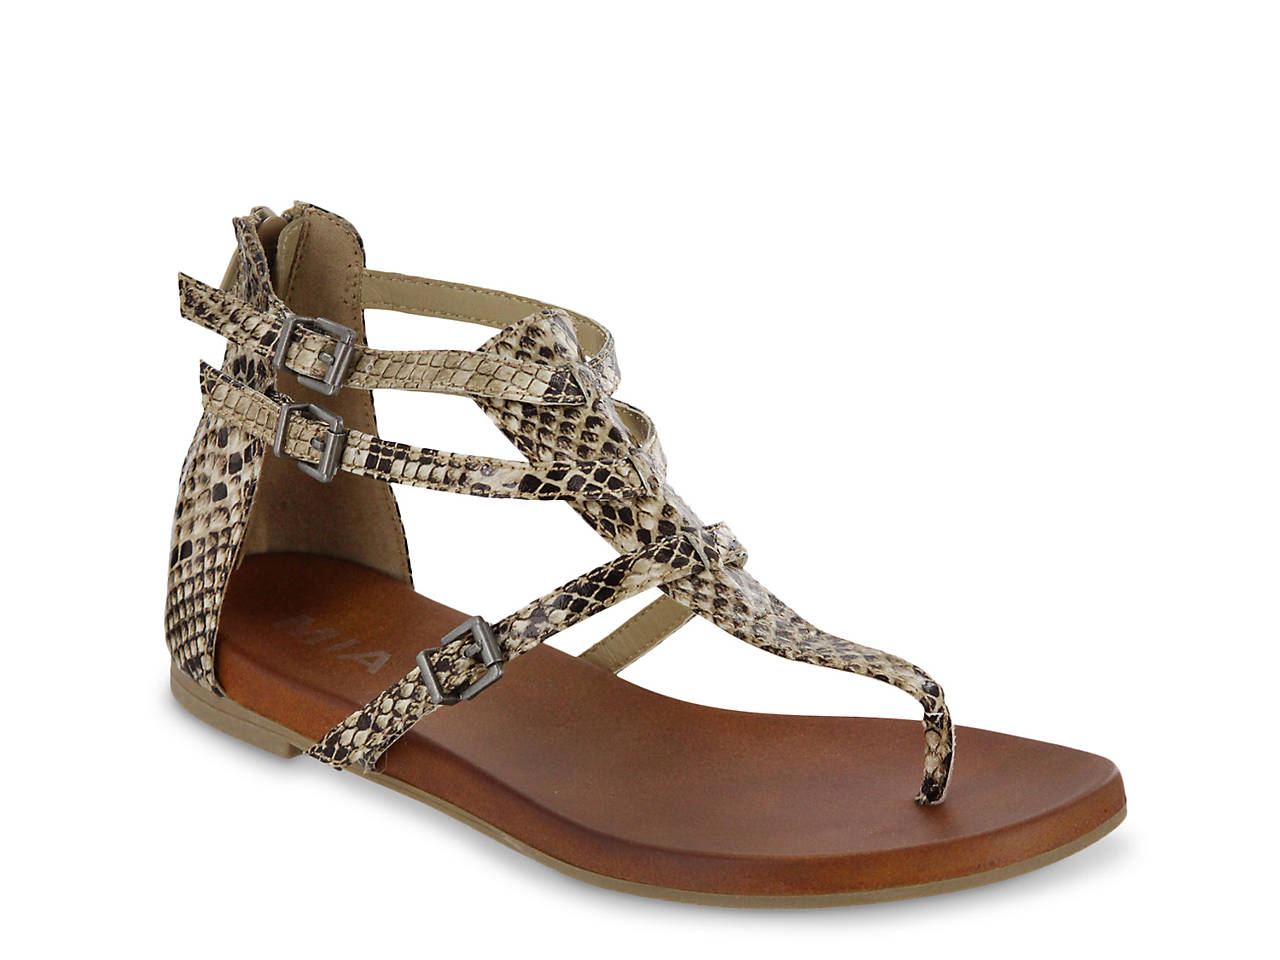 71738df9c70 Mia Dashielle Gladiator Sandal Women s Shoes